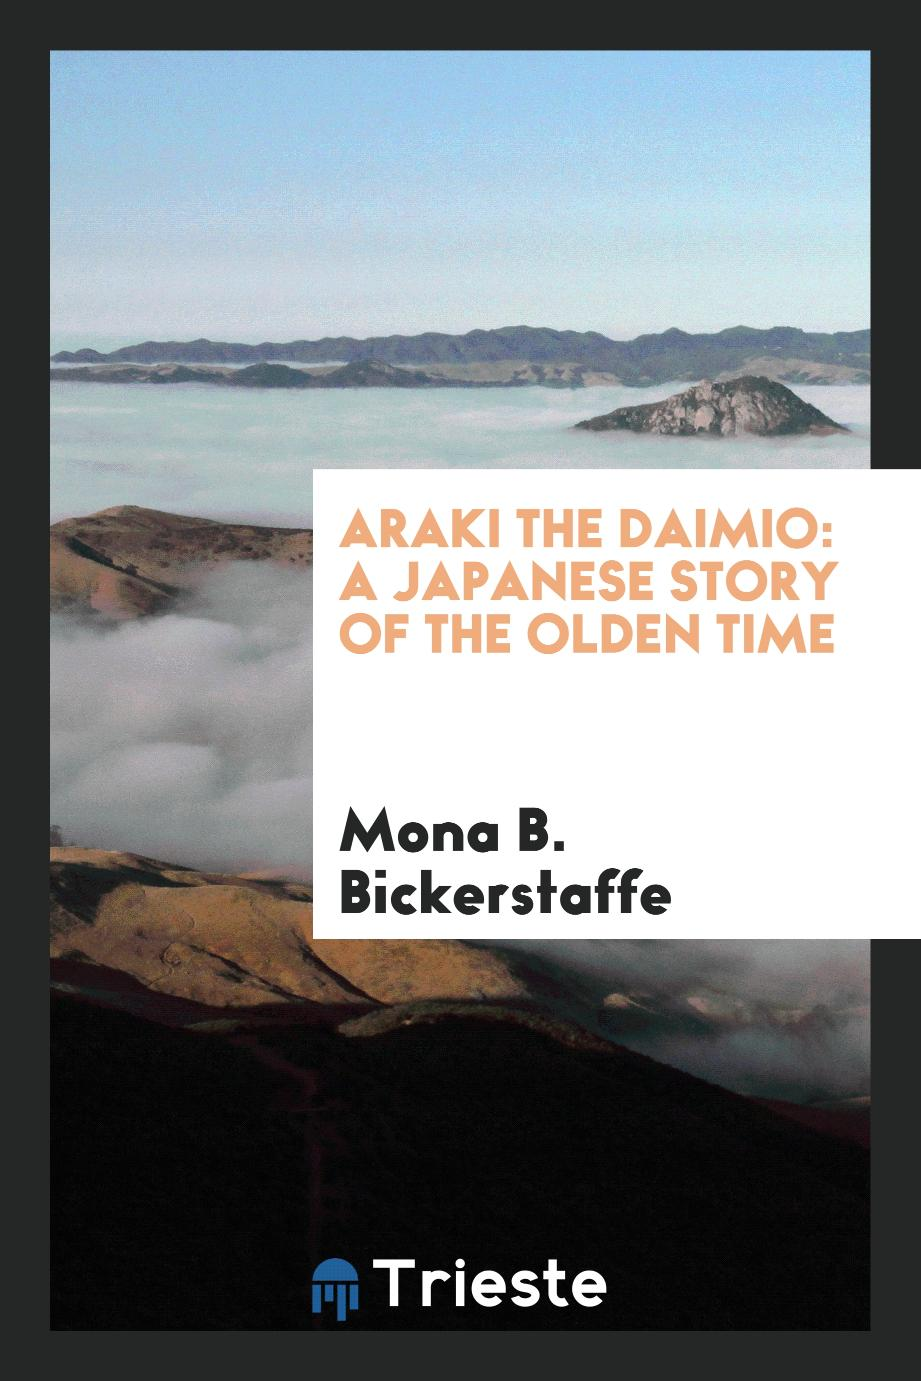 Araki the Daimio: A Japanese Story of the Olden Time